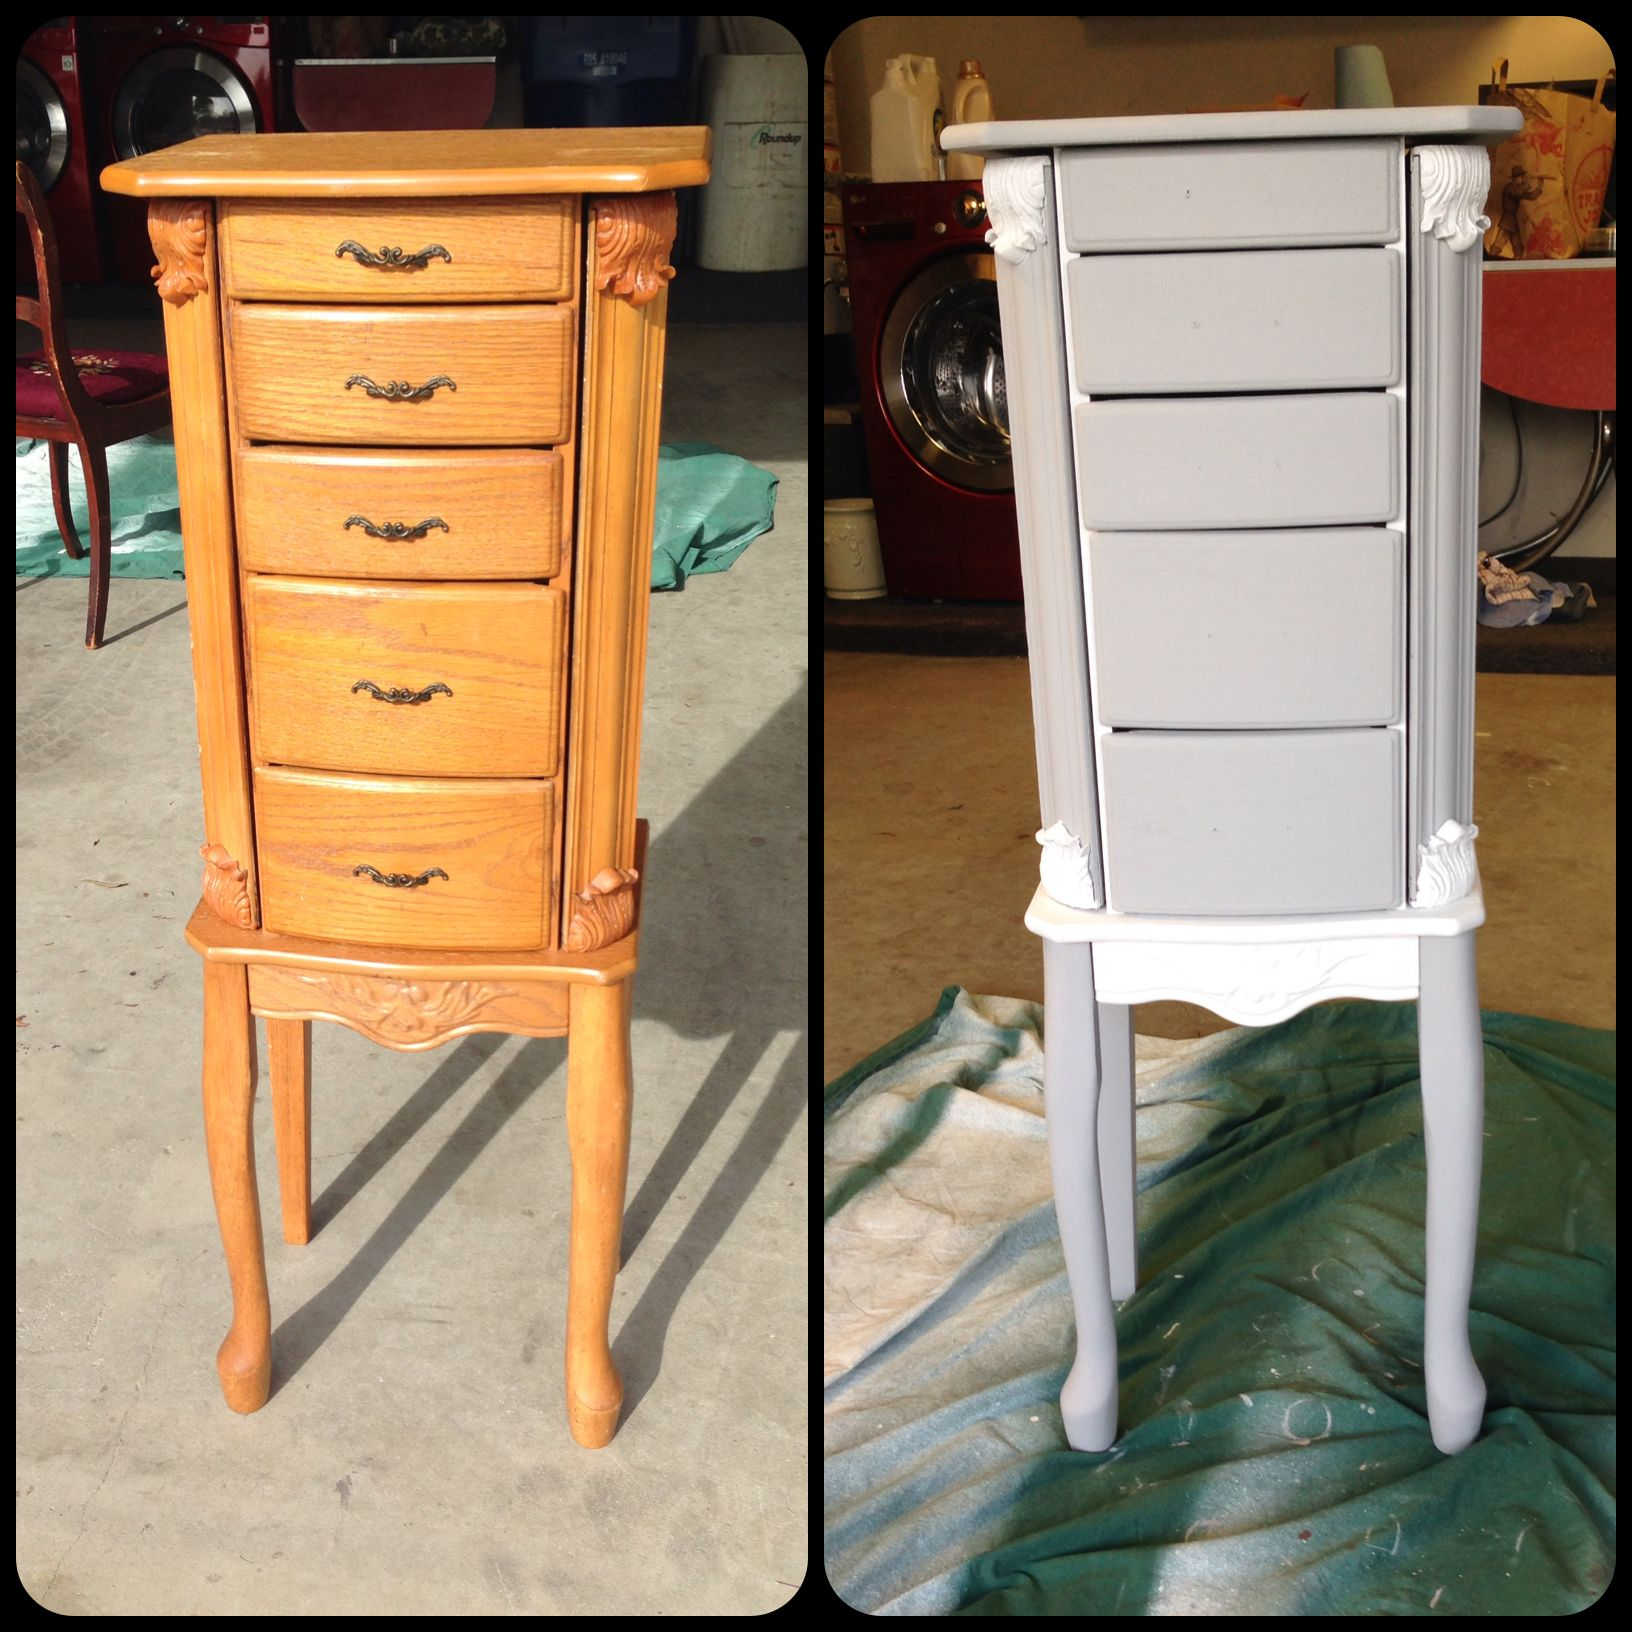 Pin By Candace Davis On DIY Pinterest. Full resolution  image, nominally Width 1632 Height 1632 pixels, image with #CA7101.